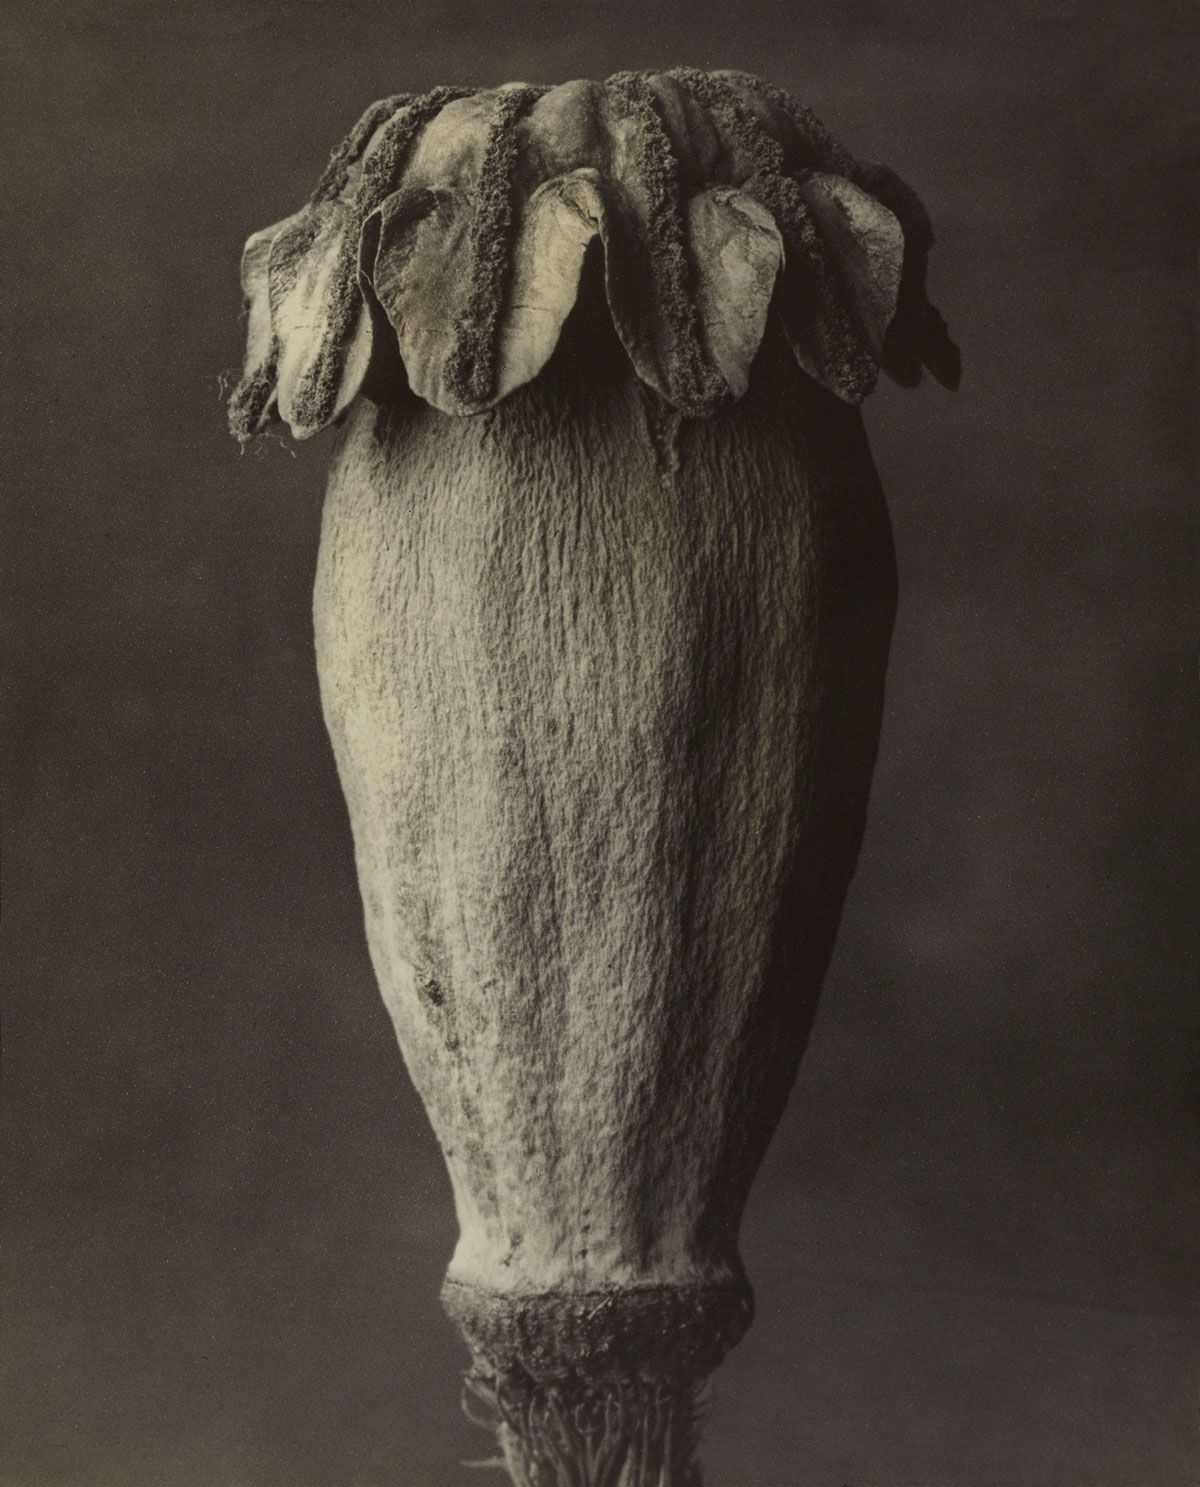 Karl Blossfeldt Papaver orientalis Digital Photograph Masters of Photography